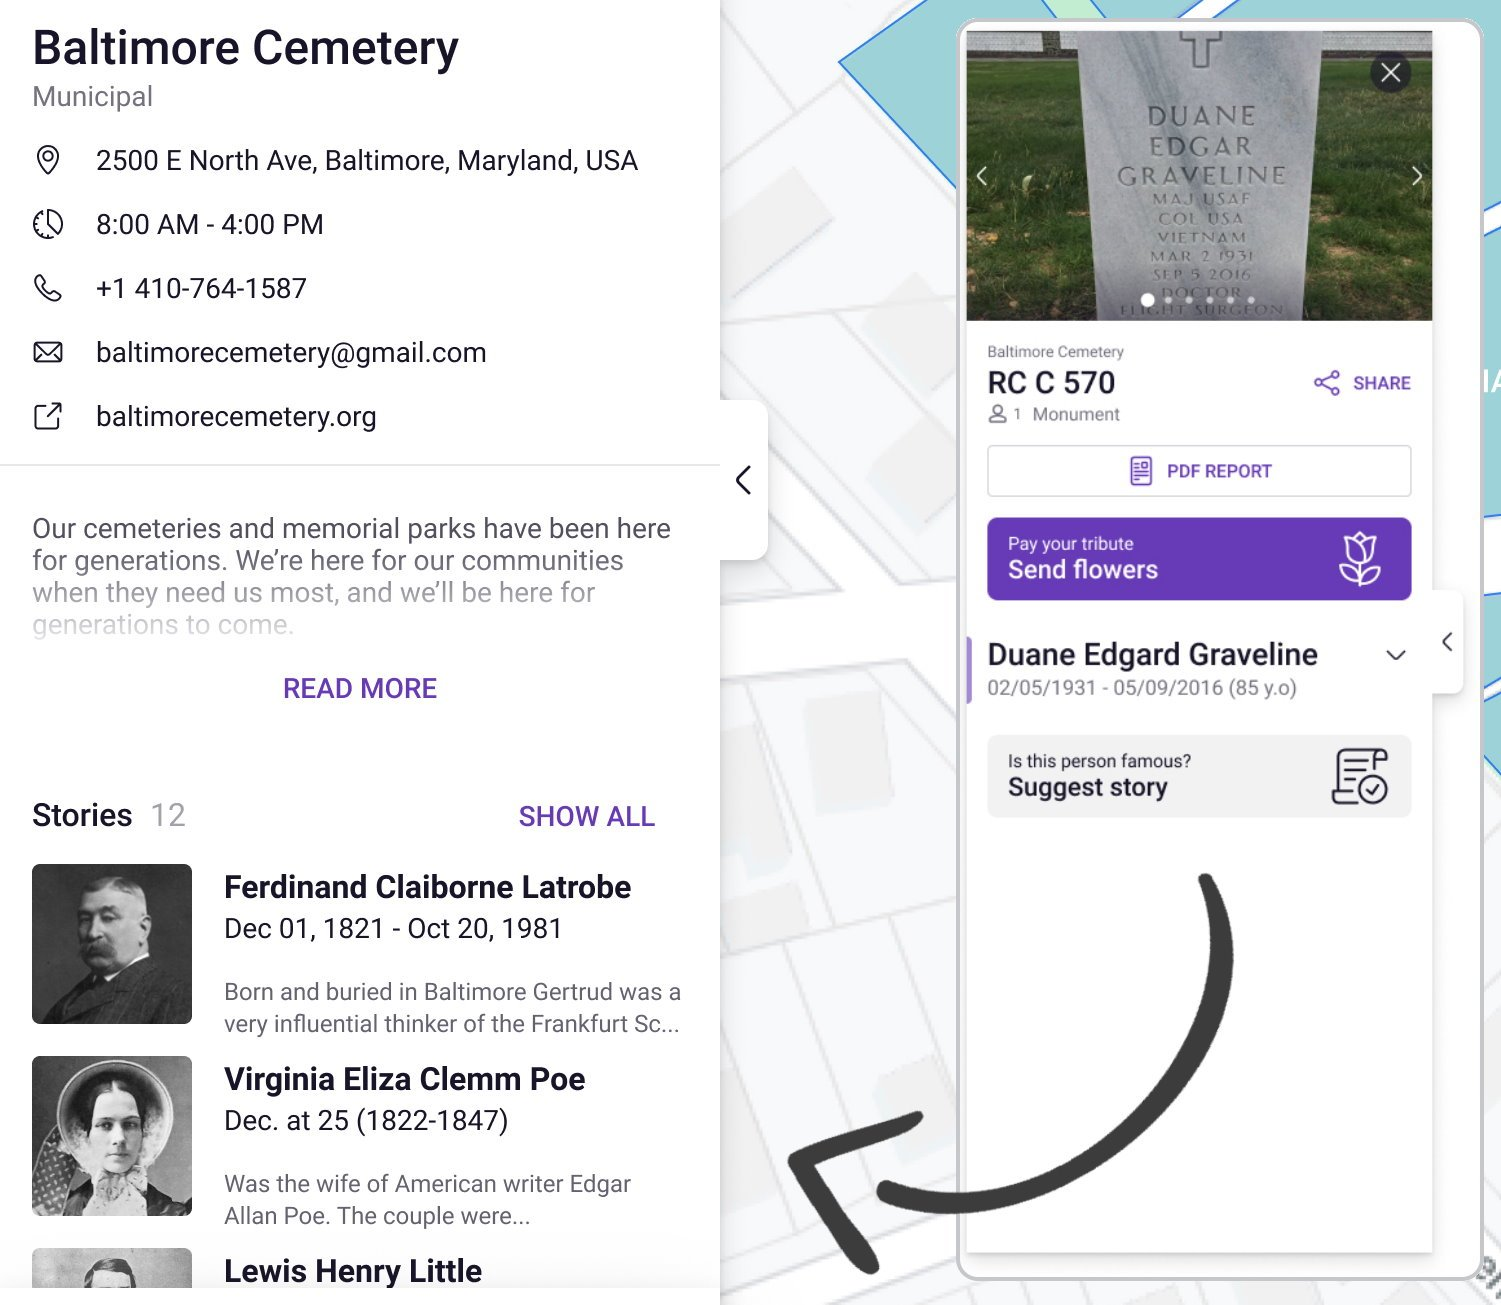 Submit and share stories | Simple Cemetery Management Software | Cemetery Software by Chronicle